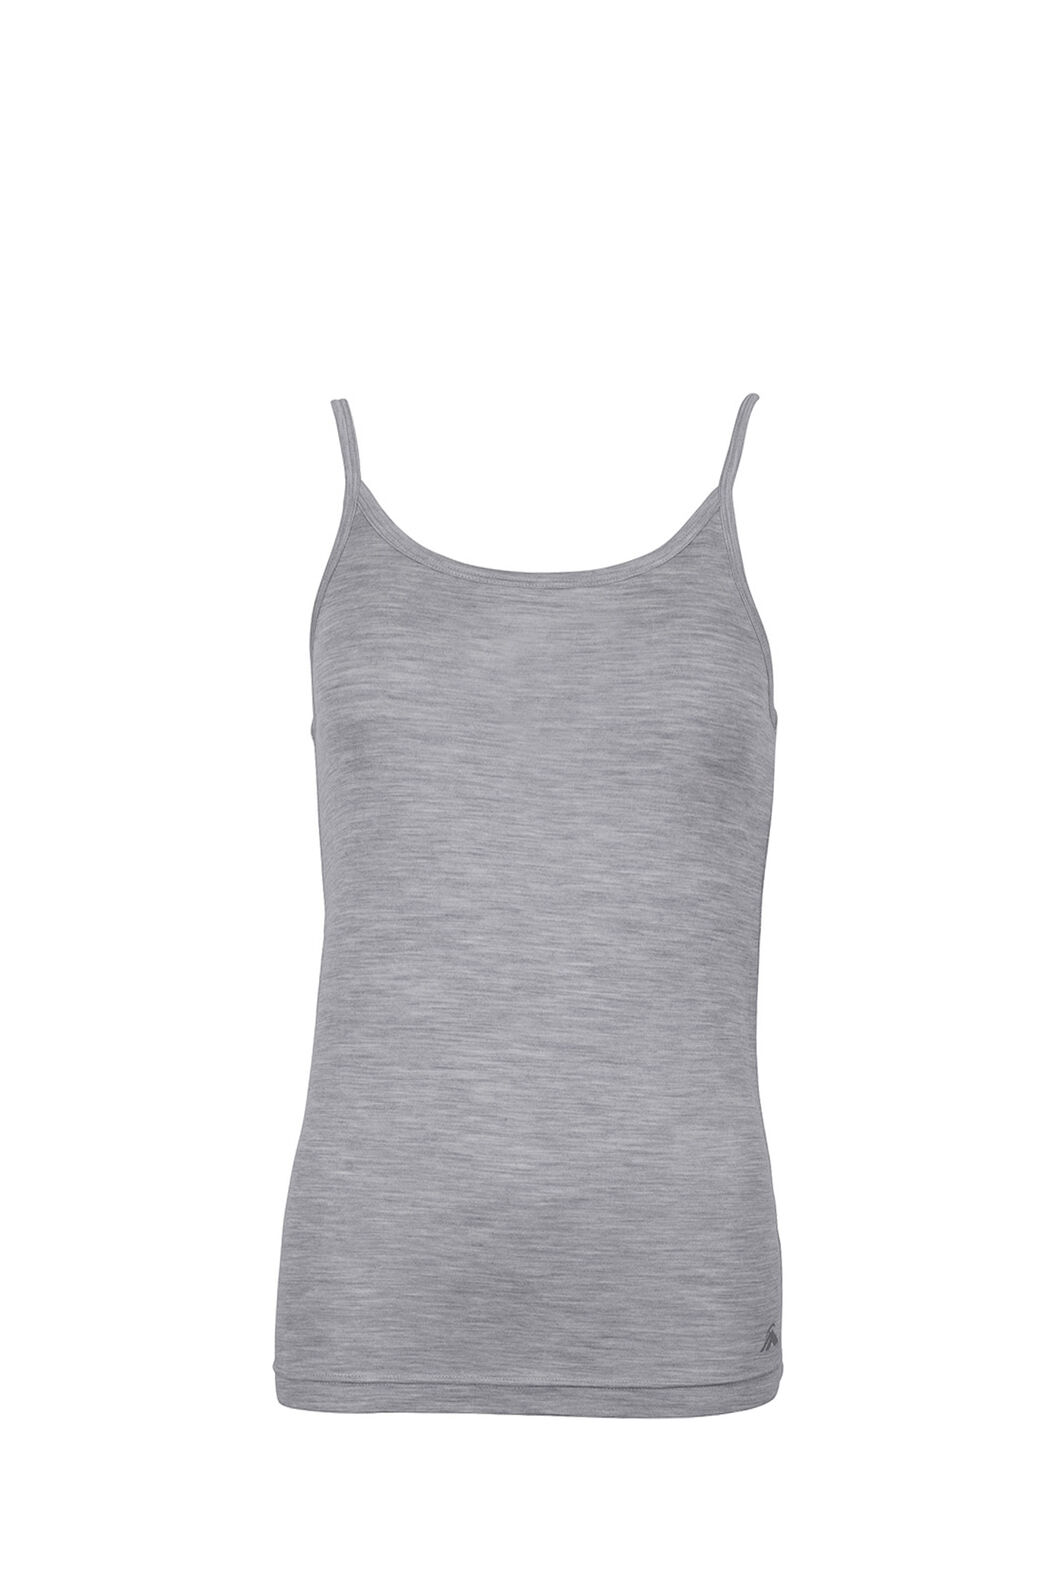 Macpac 150 Merino Camisole — Women's, Light Grey Marle, hi-res